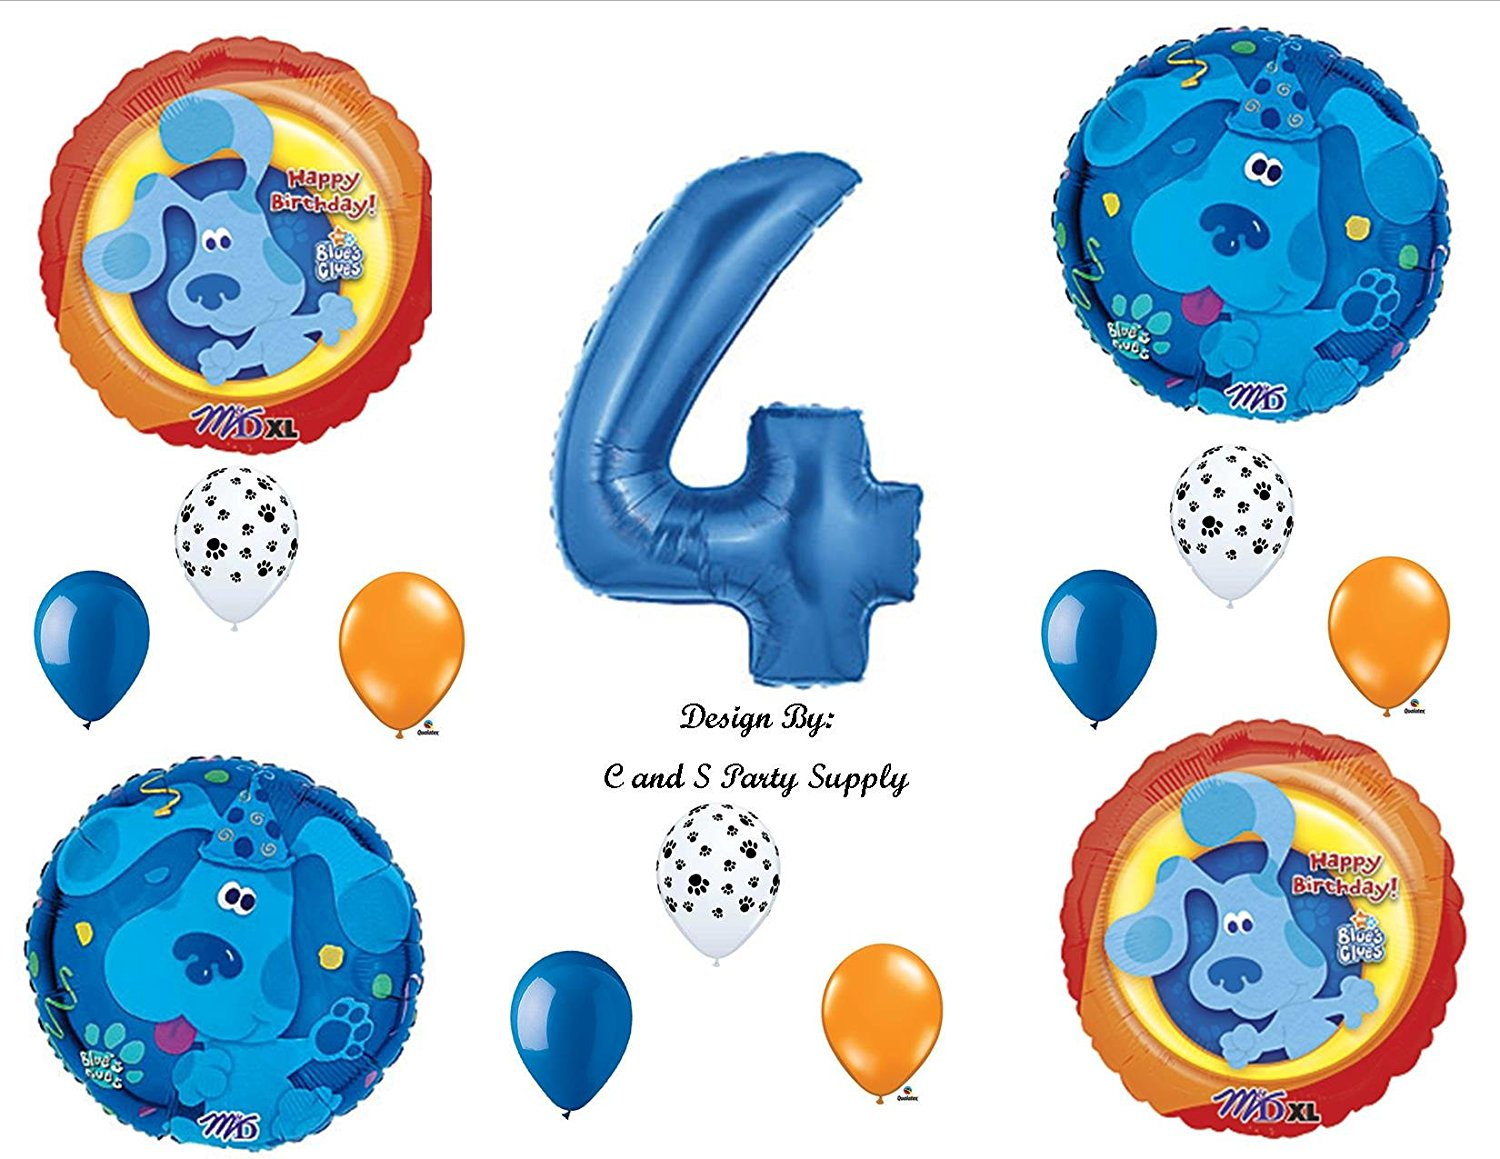 blues clues mr salt and mrs pepper. get quotations · blues clues 4th birthday party balloons decorations supplies mr salt and mrs pepper